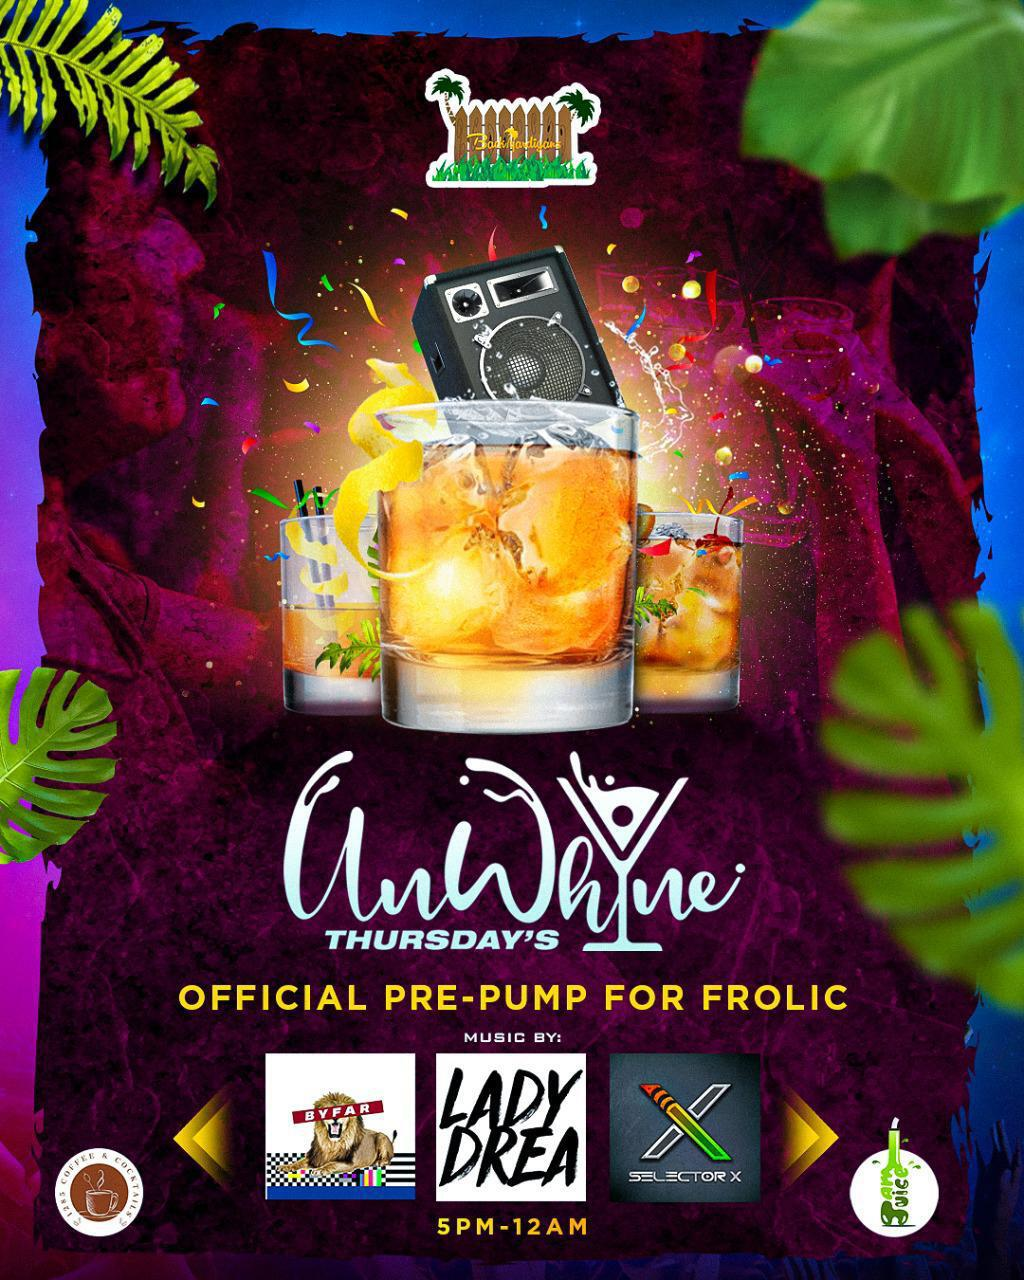 Unwhine Thursdays flyer or graphic.